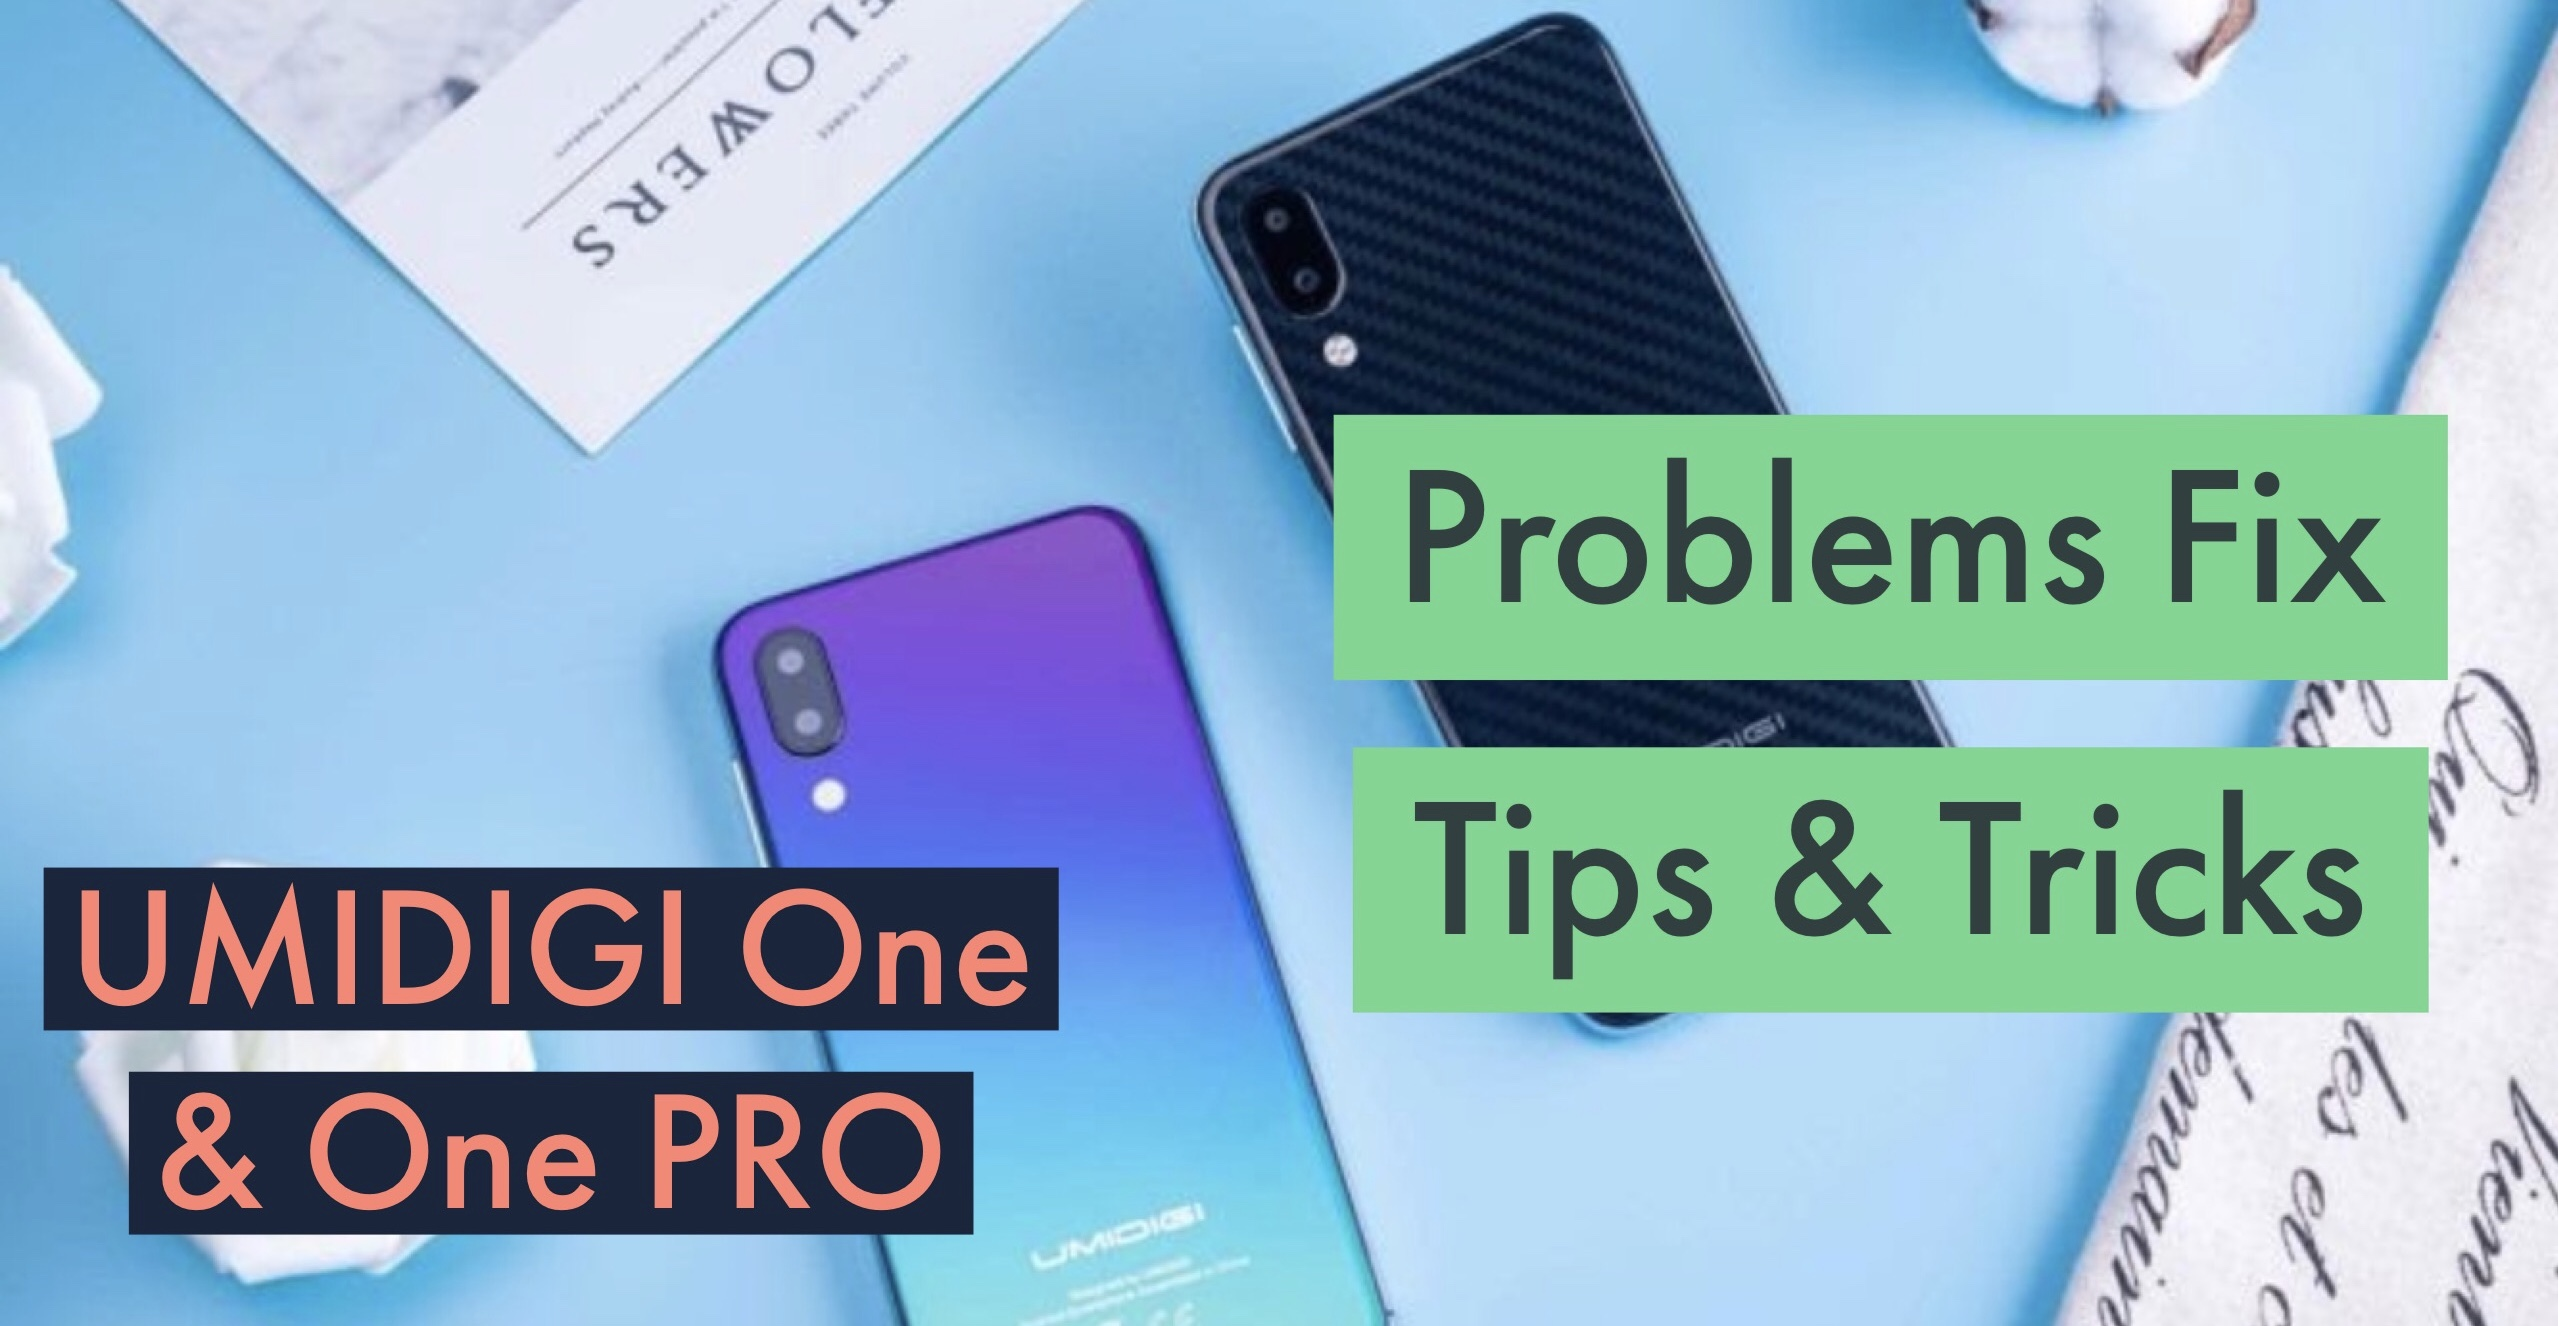 UMIDIGI One & One PRO Most Common Problems & Issues +